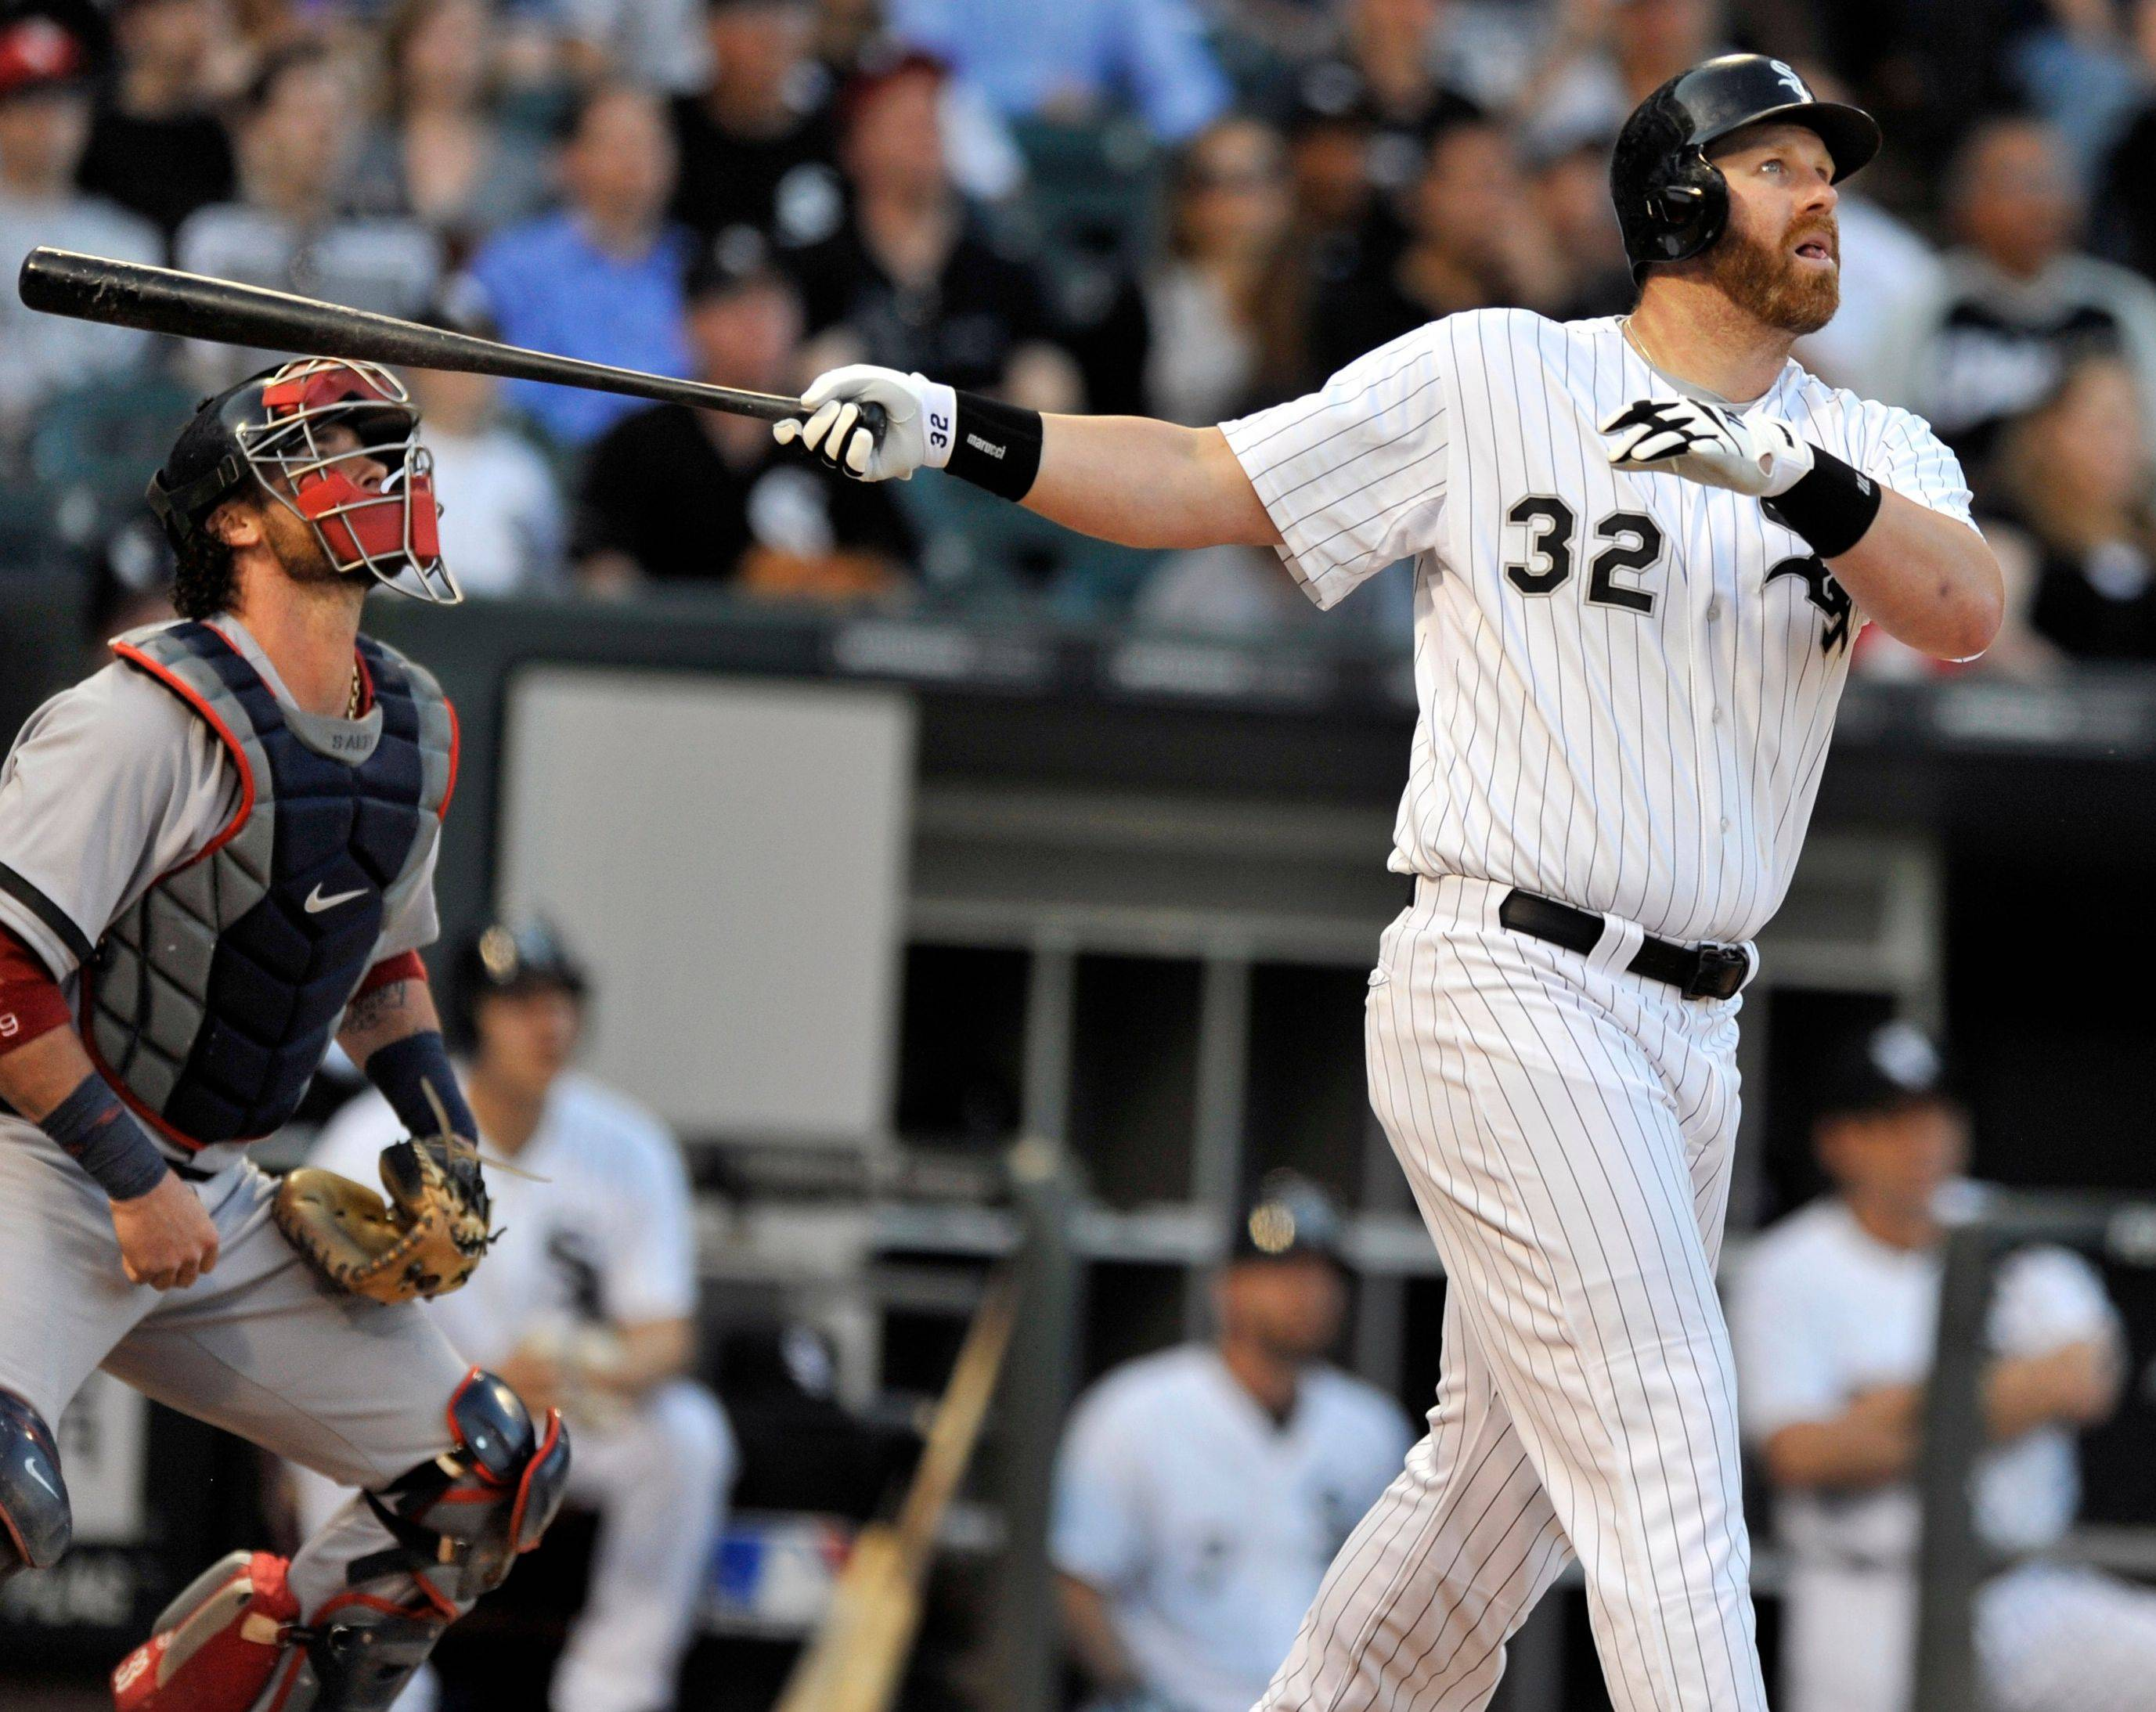 Adam Dunn watches his 3-run home run during the first inning Monday night at U.S. Cellular Field. It was Dunn's 11 home run of the year.